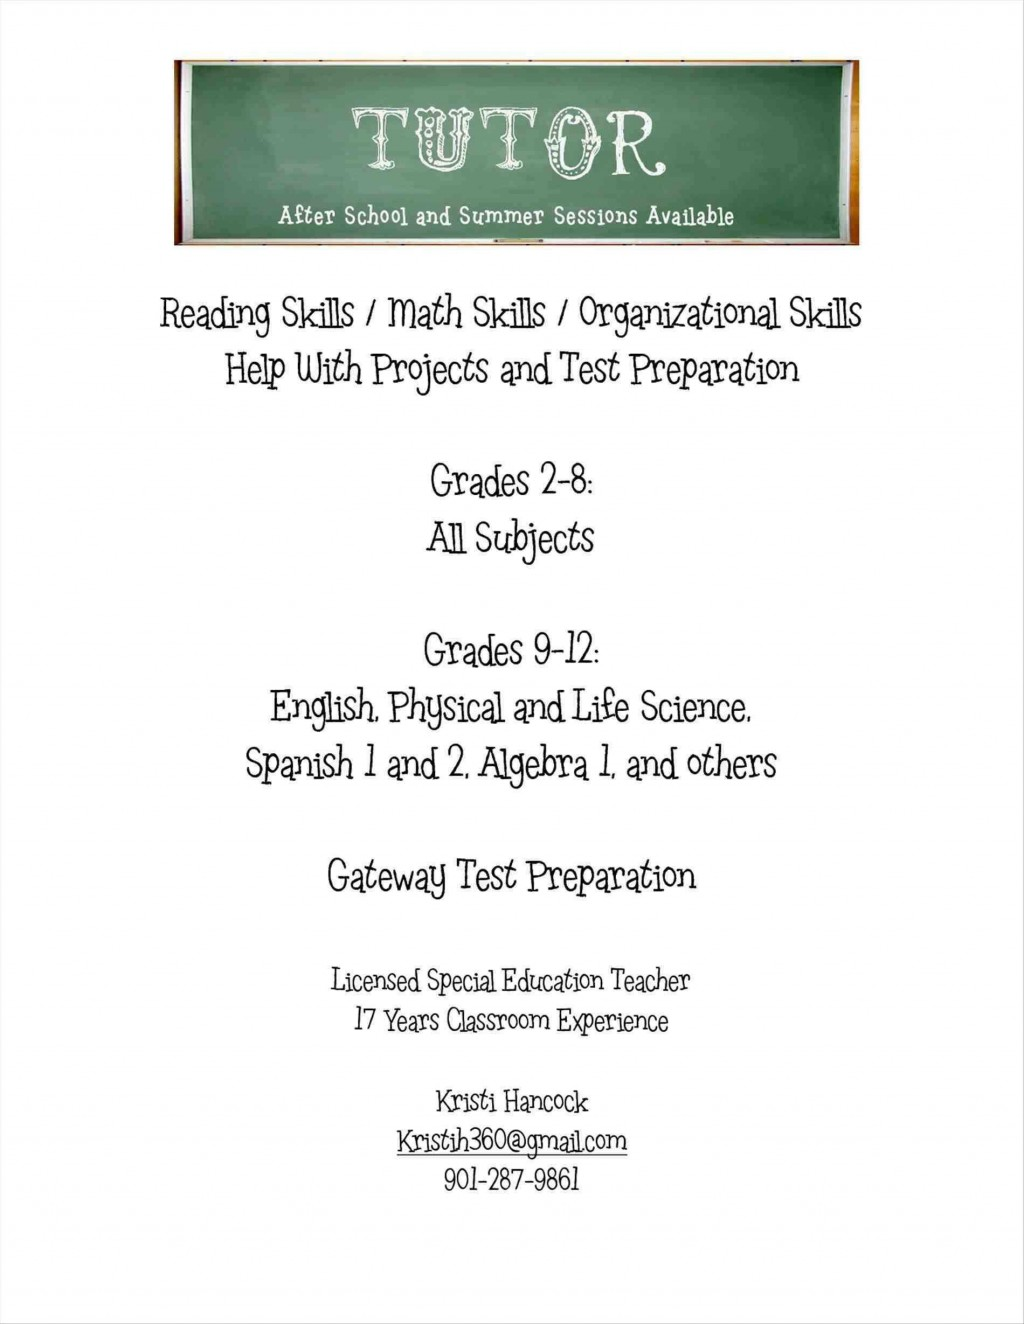 001 Incredible Tutor Flyer Template Free High Def Large